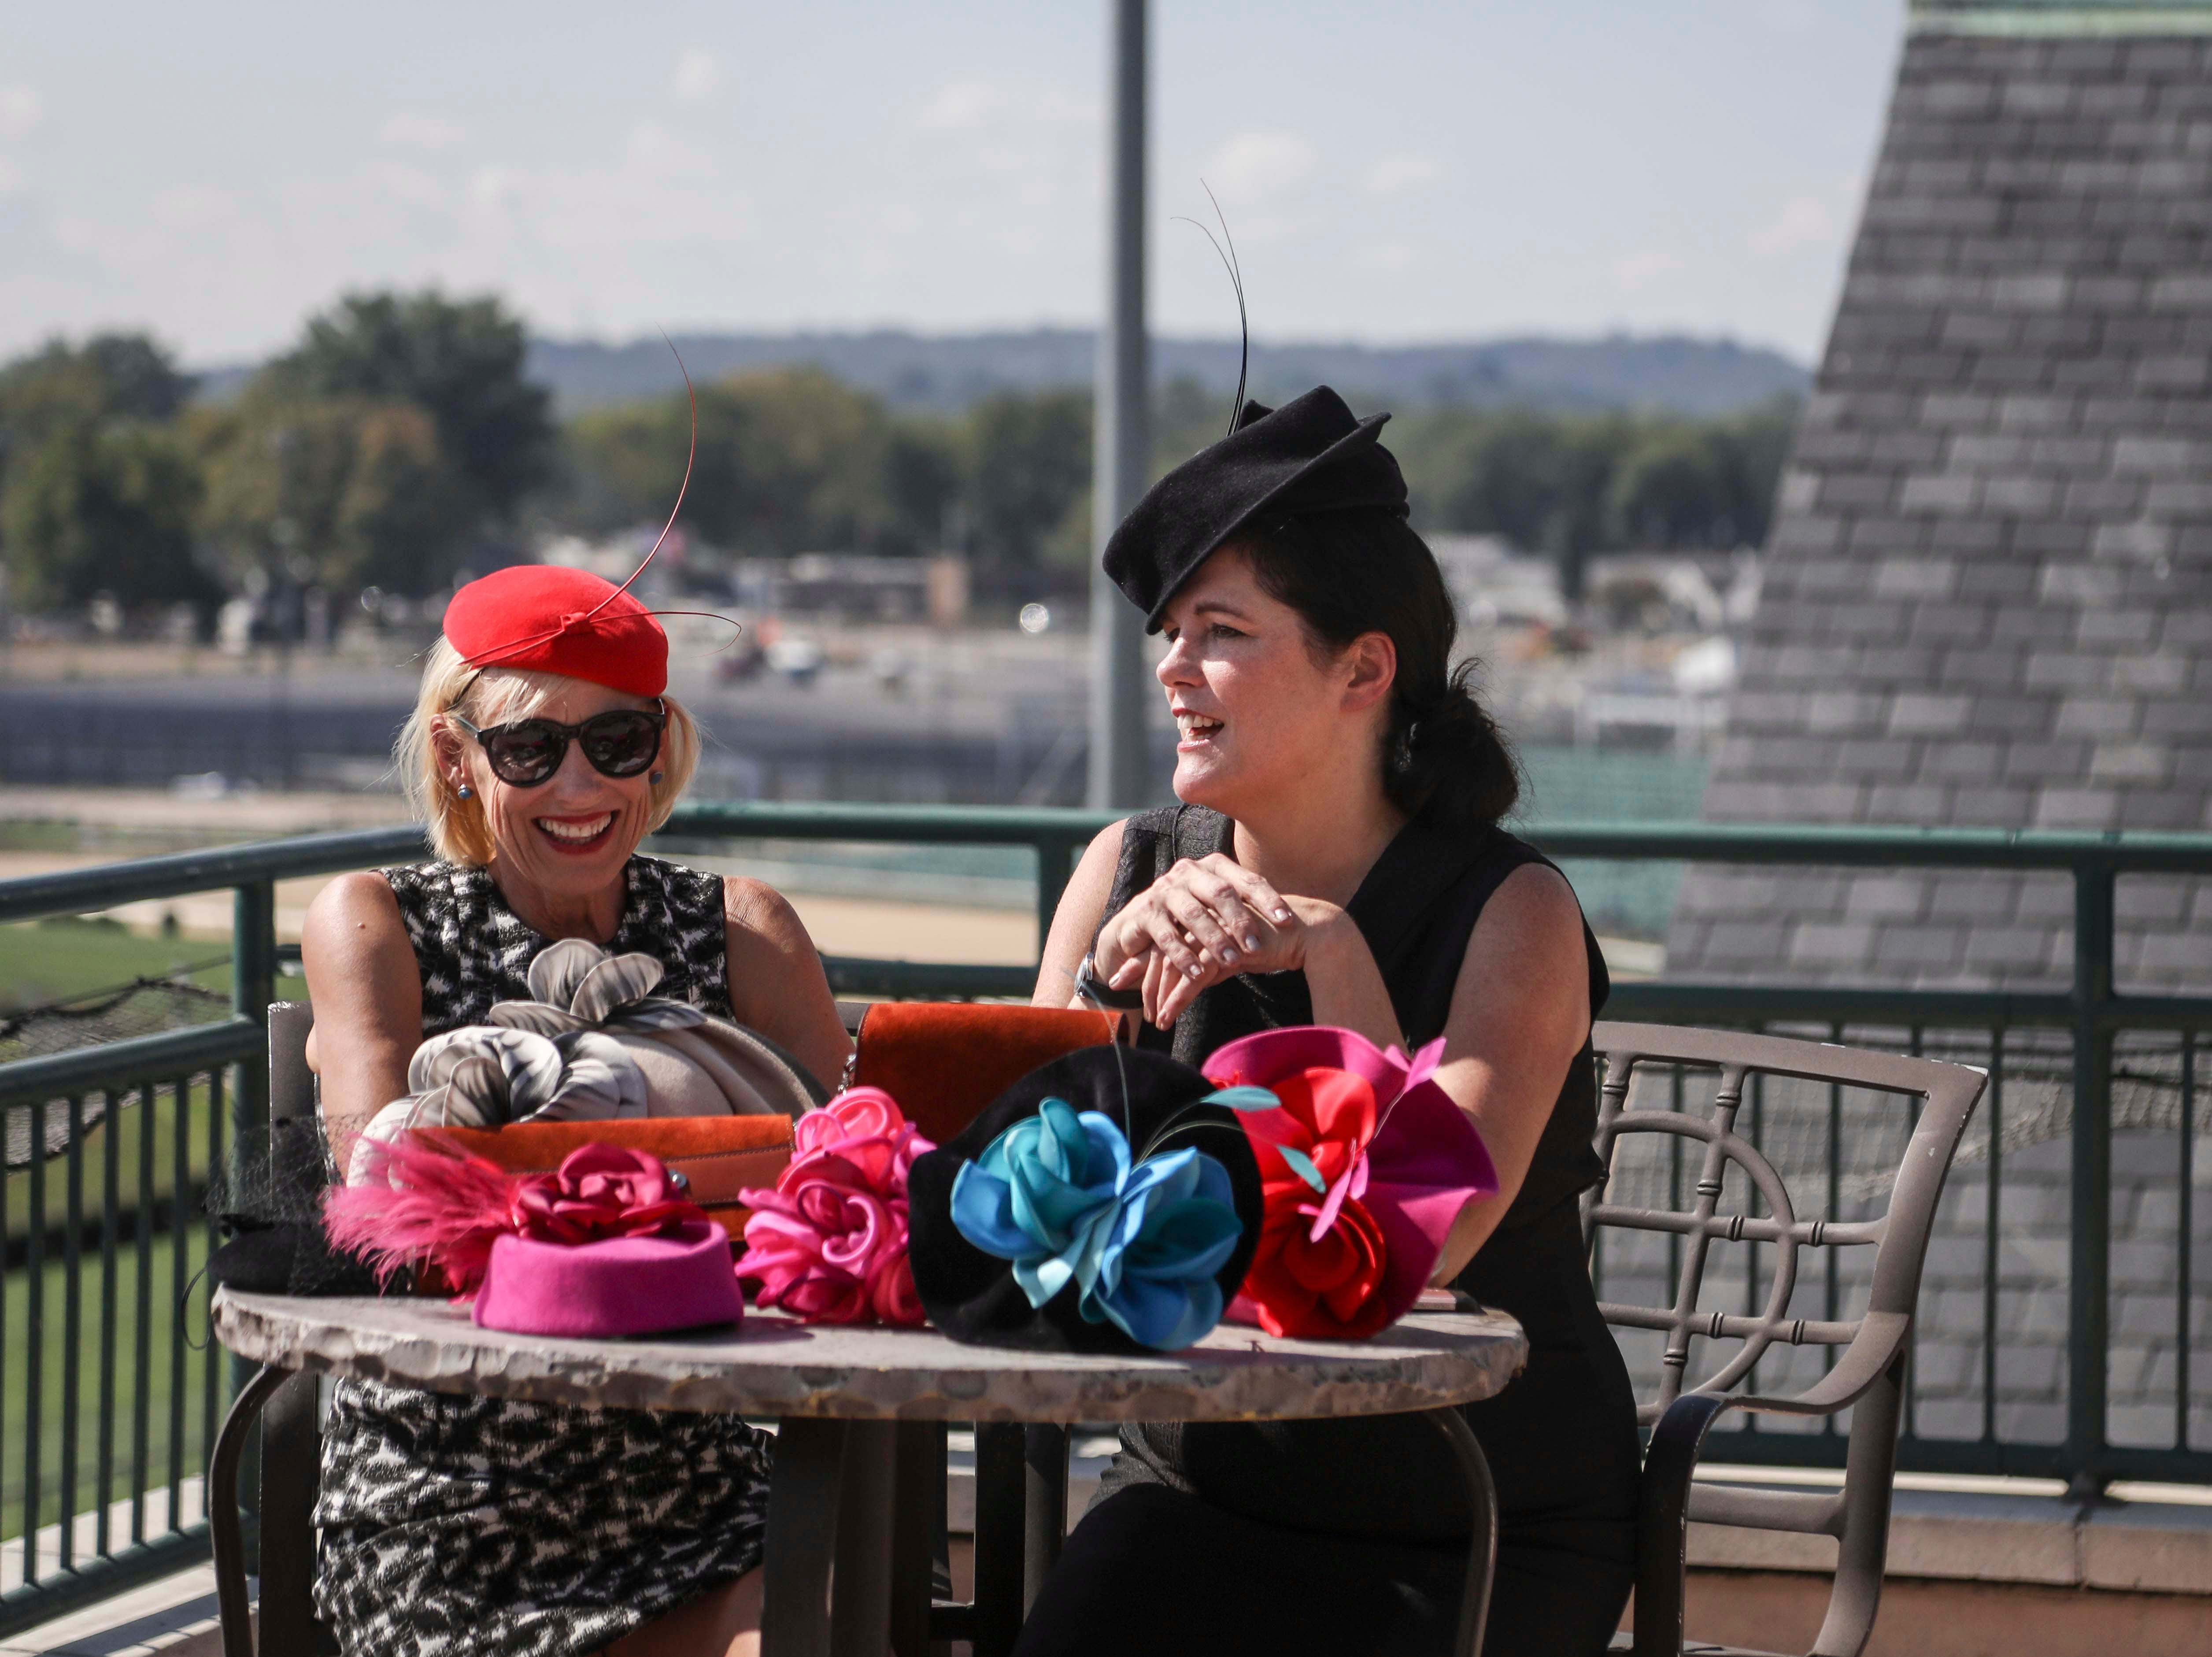 Kirby Adams, left, and Christine Moore, right, track fashion expert and owner of Cam Hats, discuss track fashion during an interview with the Courier Journal ahead of the Breeders Cup (November 3) at Churchill Downs on Wednesday, October 3, 2018.